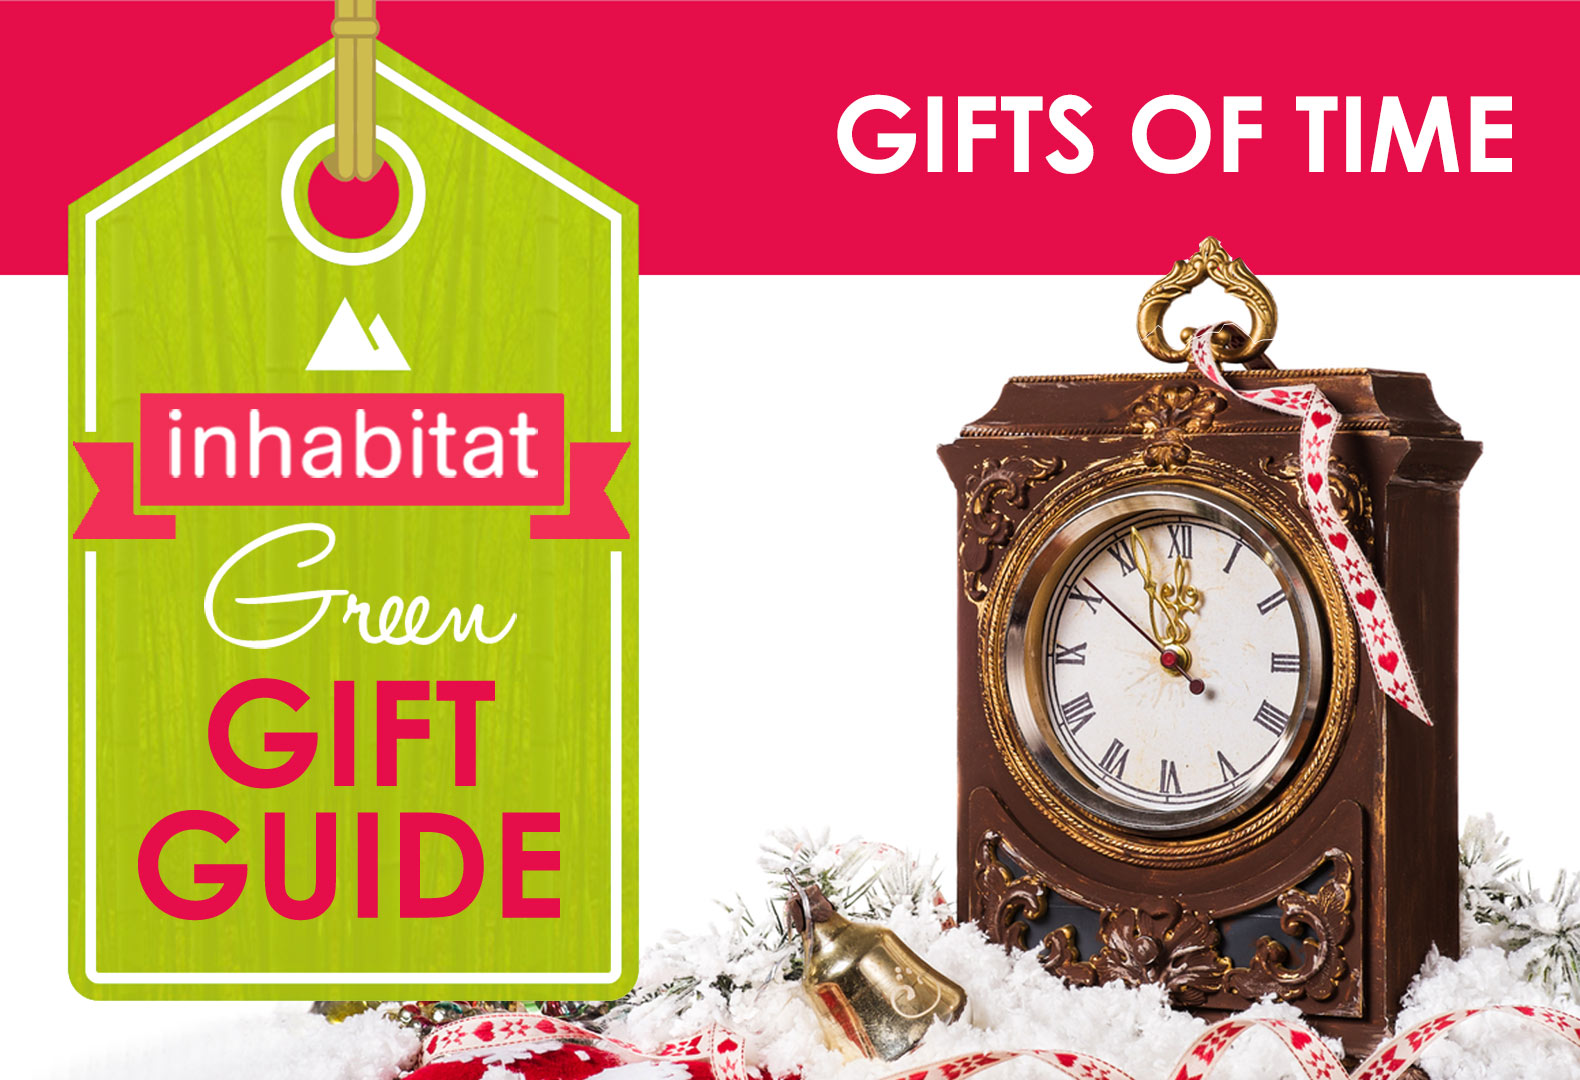 11 buy nothing gifts of time inhabitat green design green holiday green gift guide green holiday gift guide eco holiday green negle Choice Image